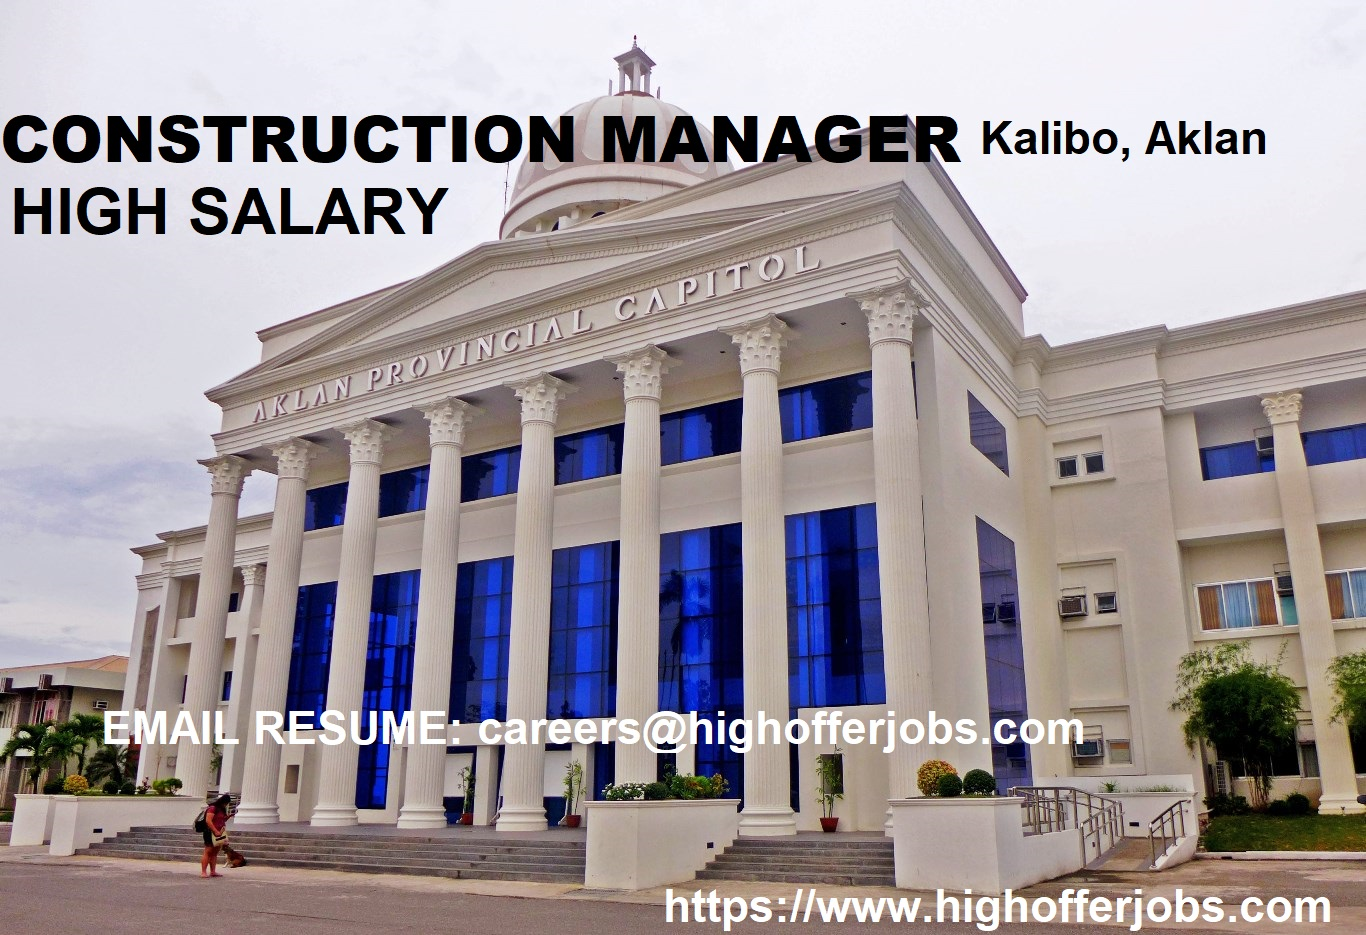 CONSTRUCTION MANAGER - Kalibo, Aklan (HIGH SALARY)